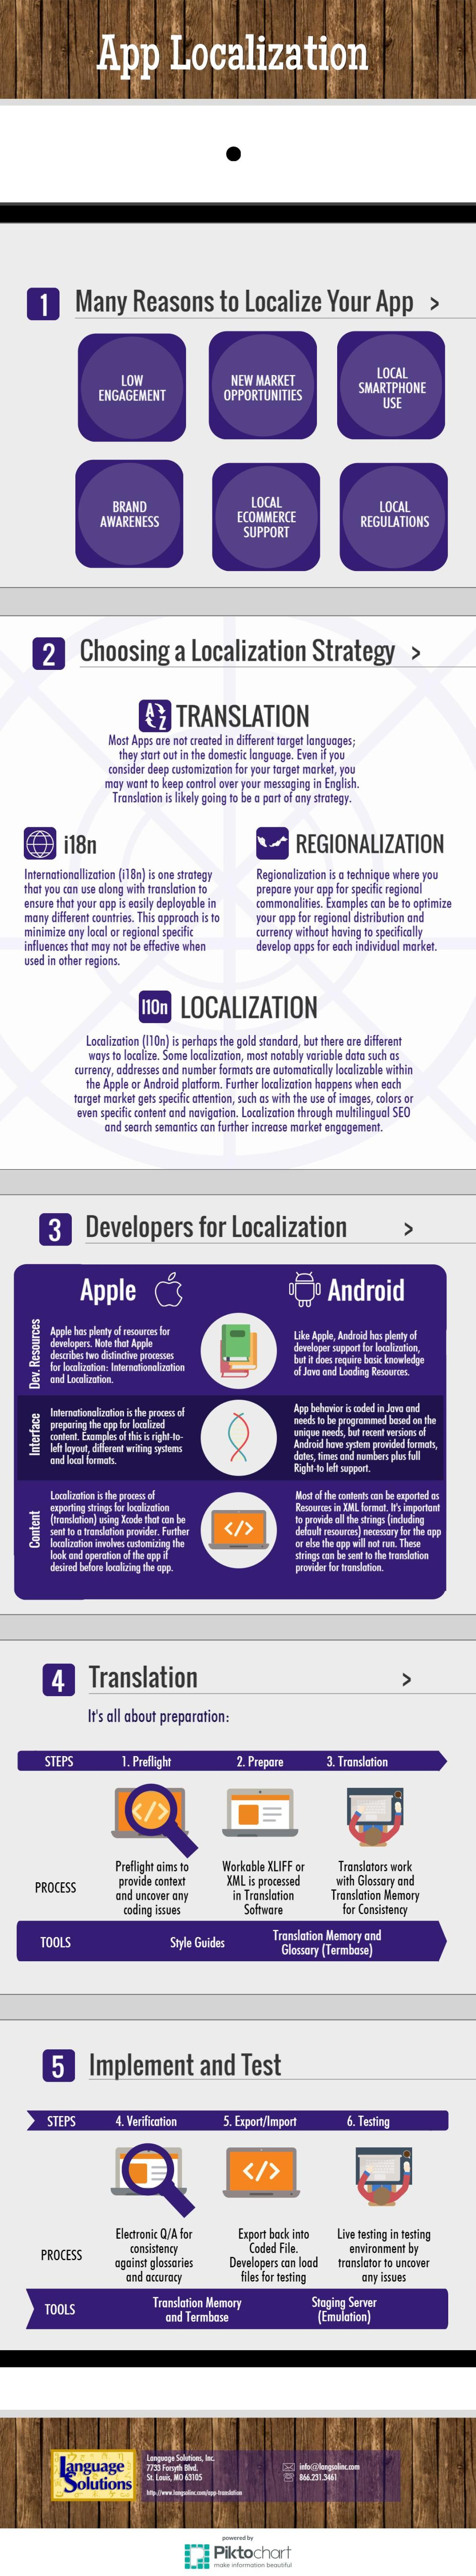 Infographic with quick overview of steps that developers can take to localize your app